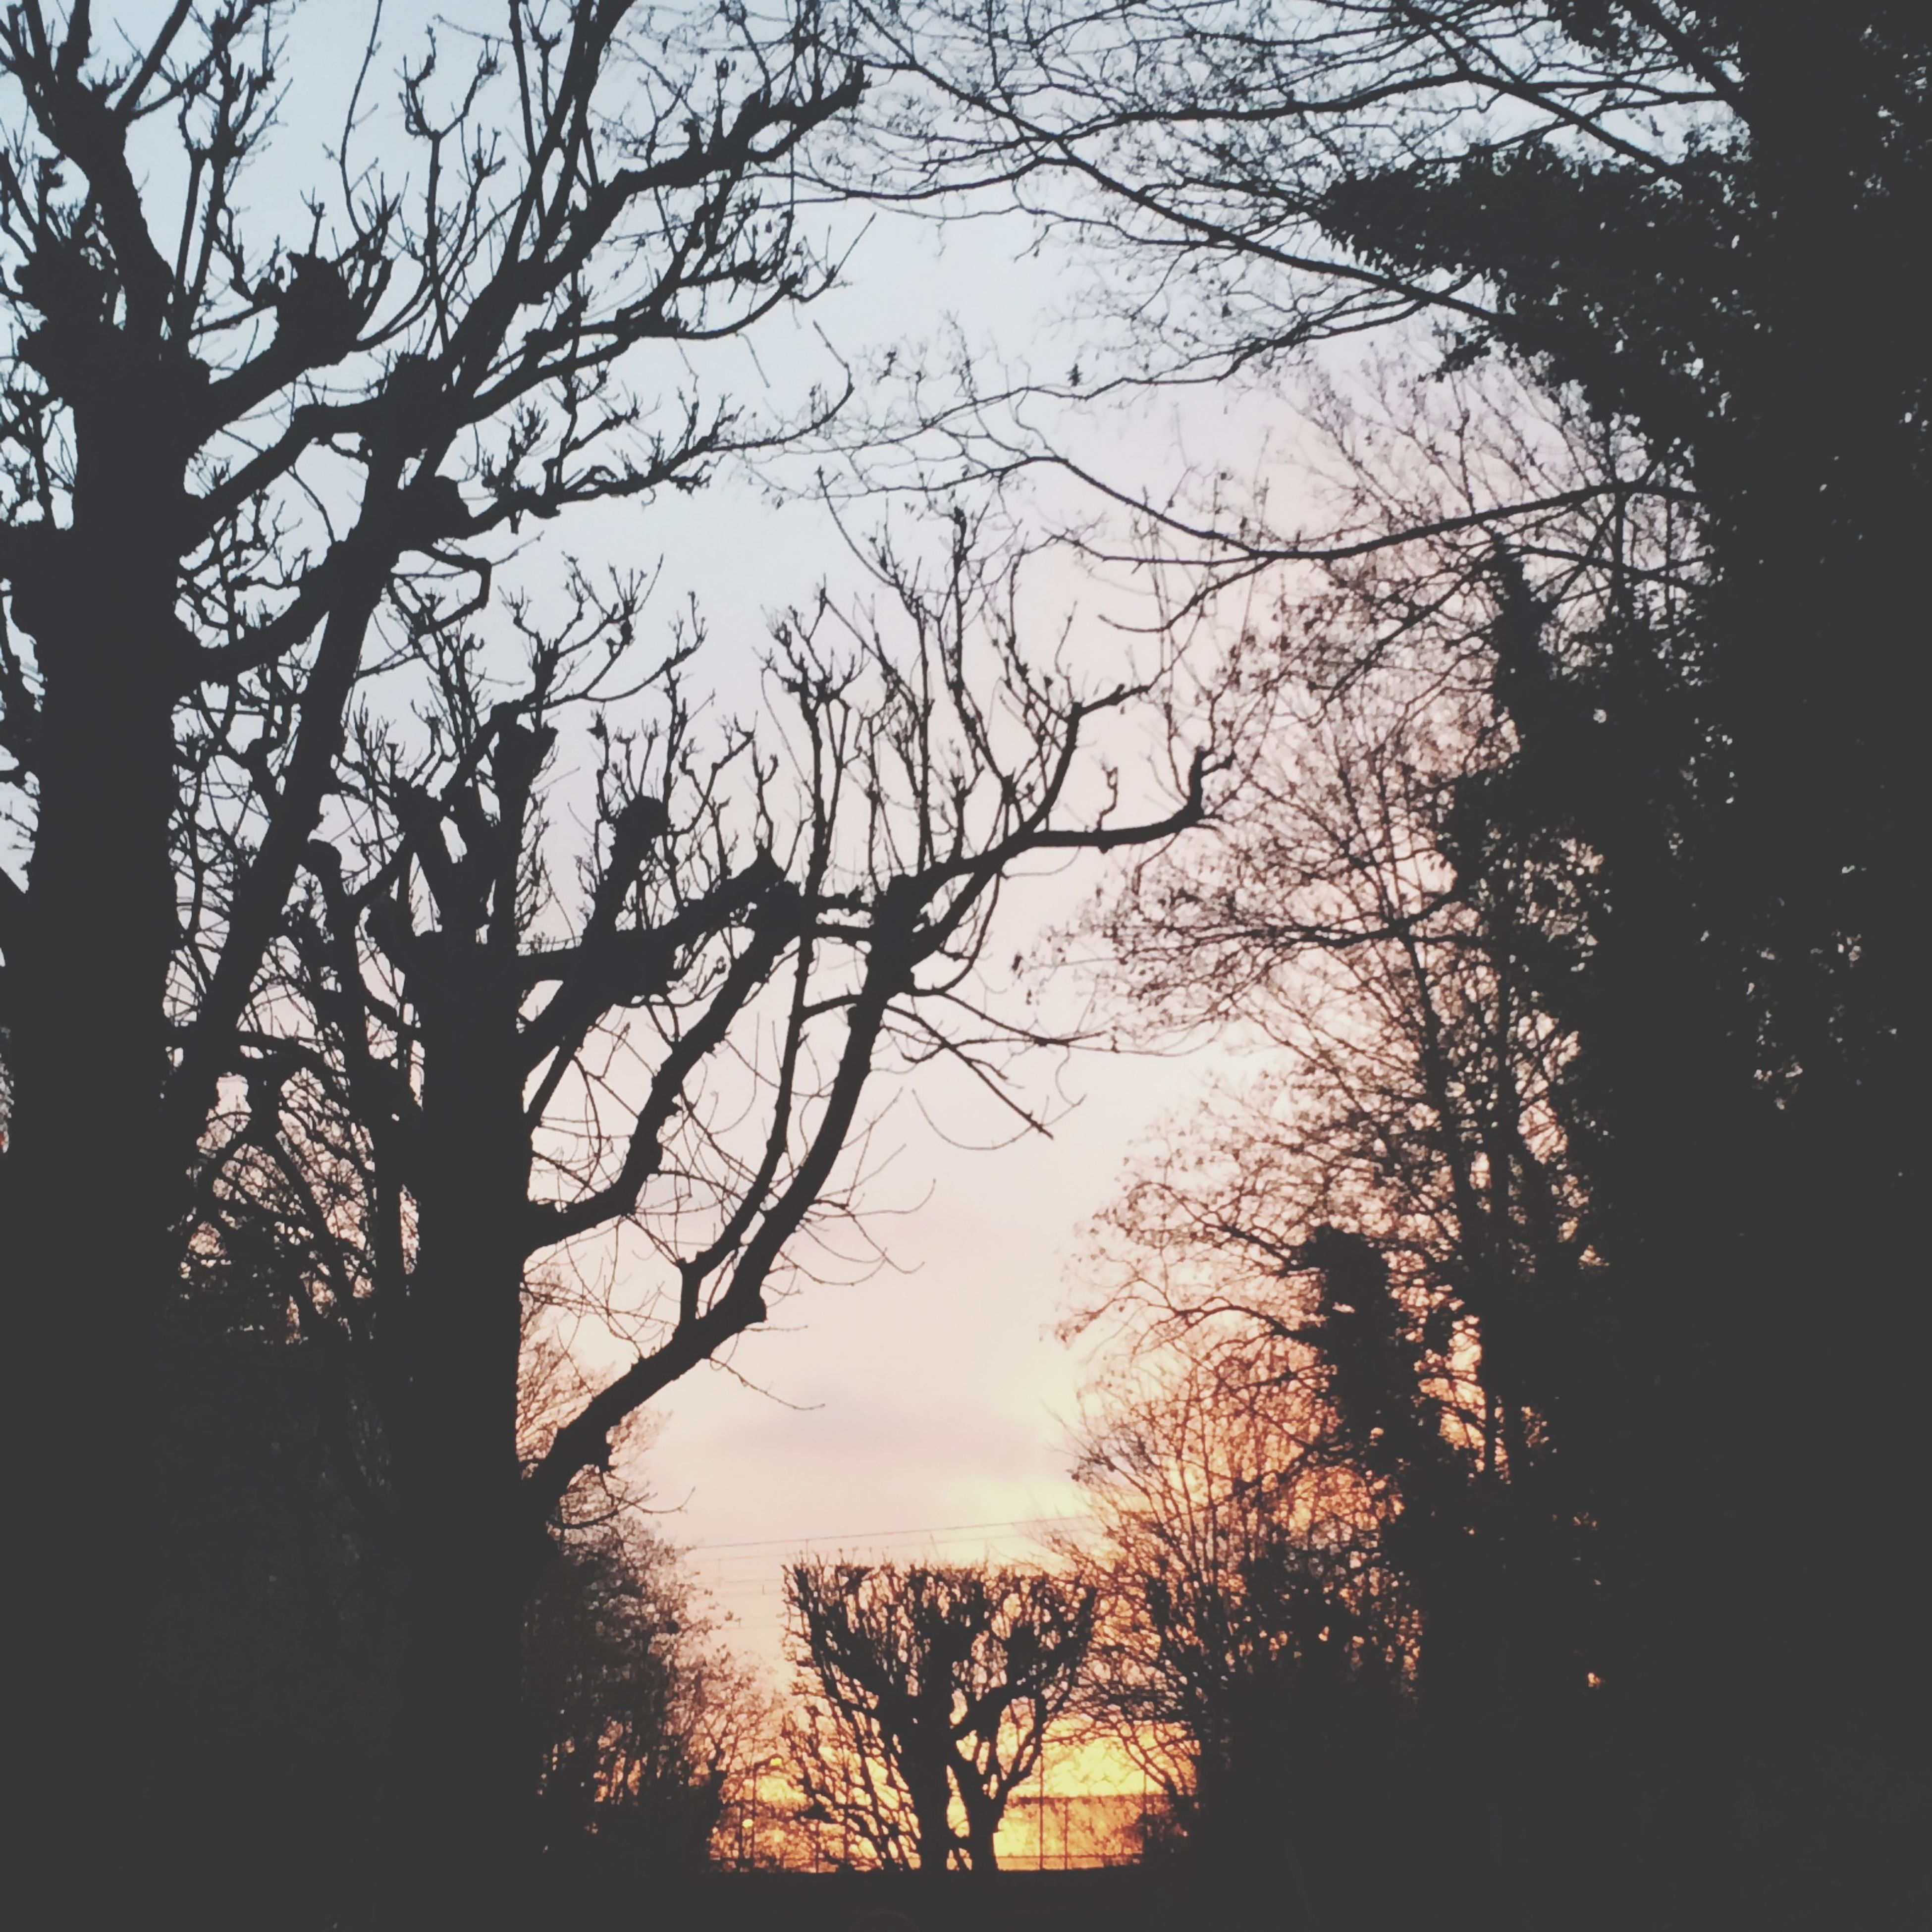 silhouette, tree, branch, tranquility, sunset, beauty in nature, tranquil scene, scenics, sky, nature, bare tree, low angle view, growth, idyllic, outline, dusk, tree trunk, outdoors, no people, non-urban scene